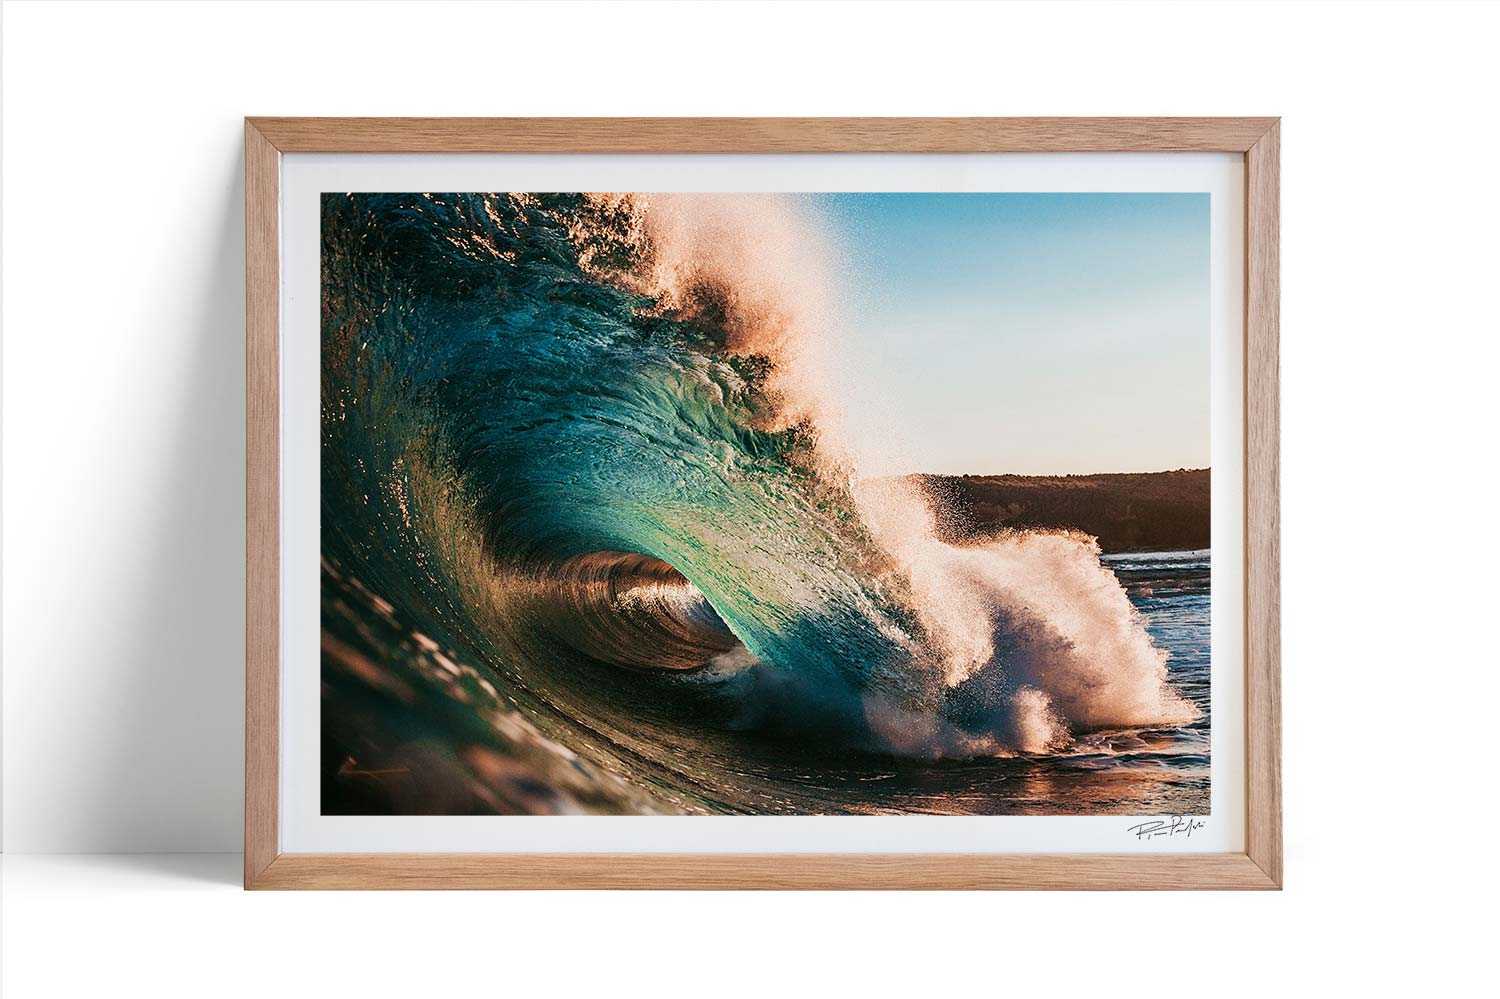 Fine Art Prints - Order your signed fine art print with an option to have it professionally framed.